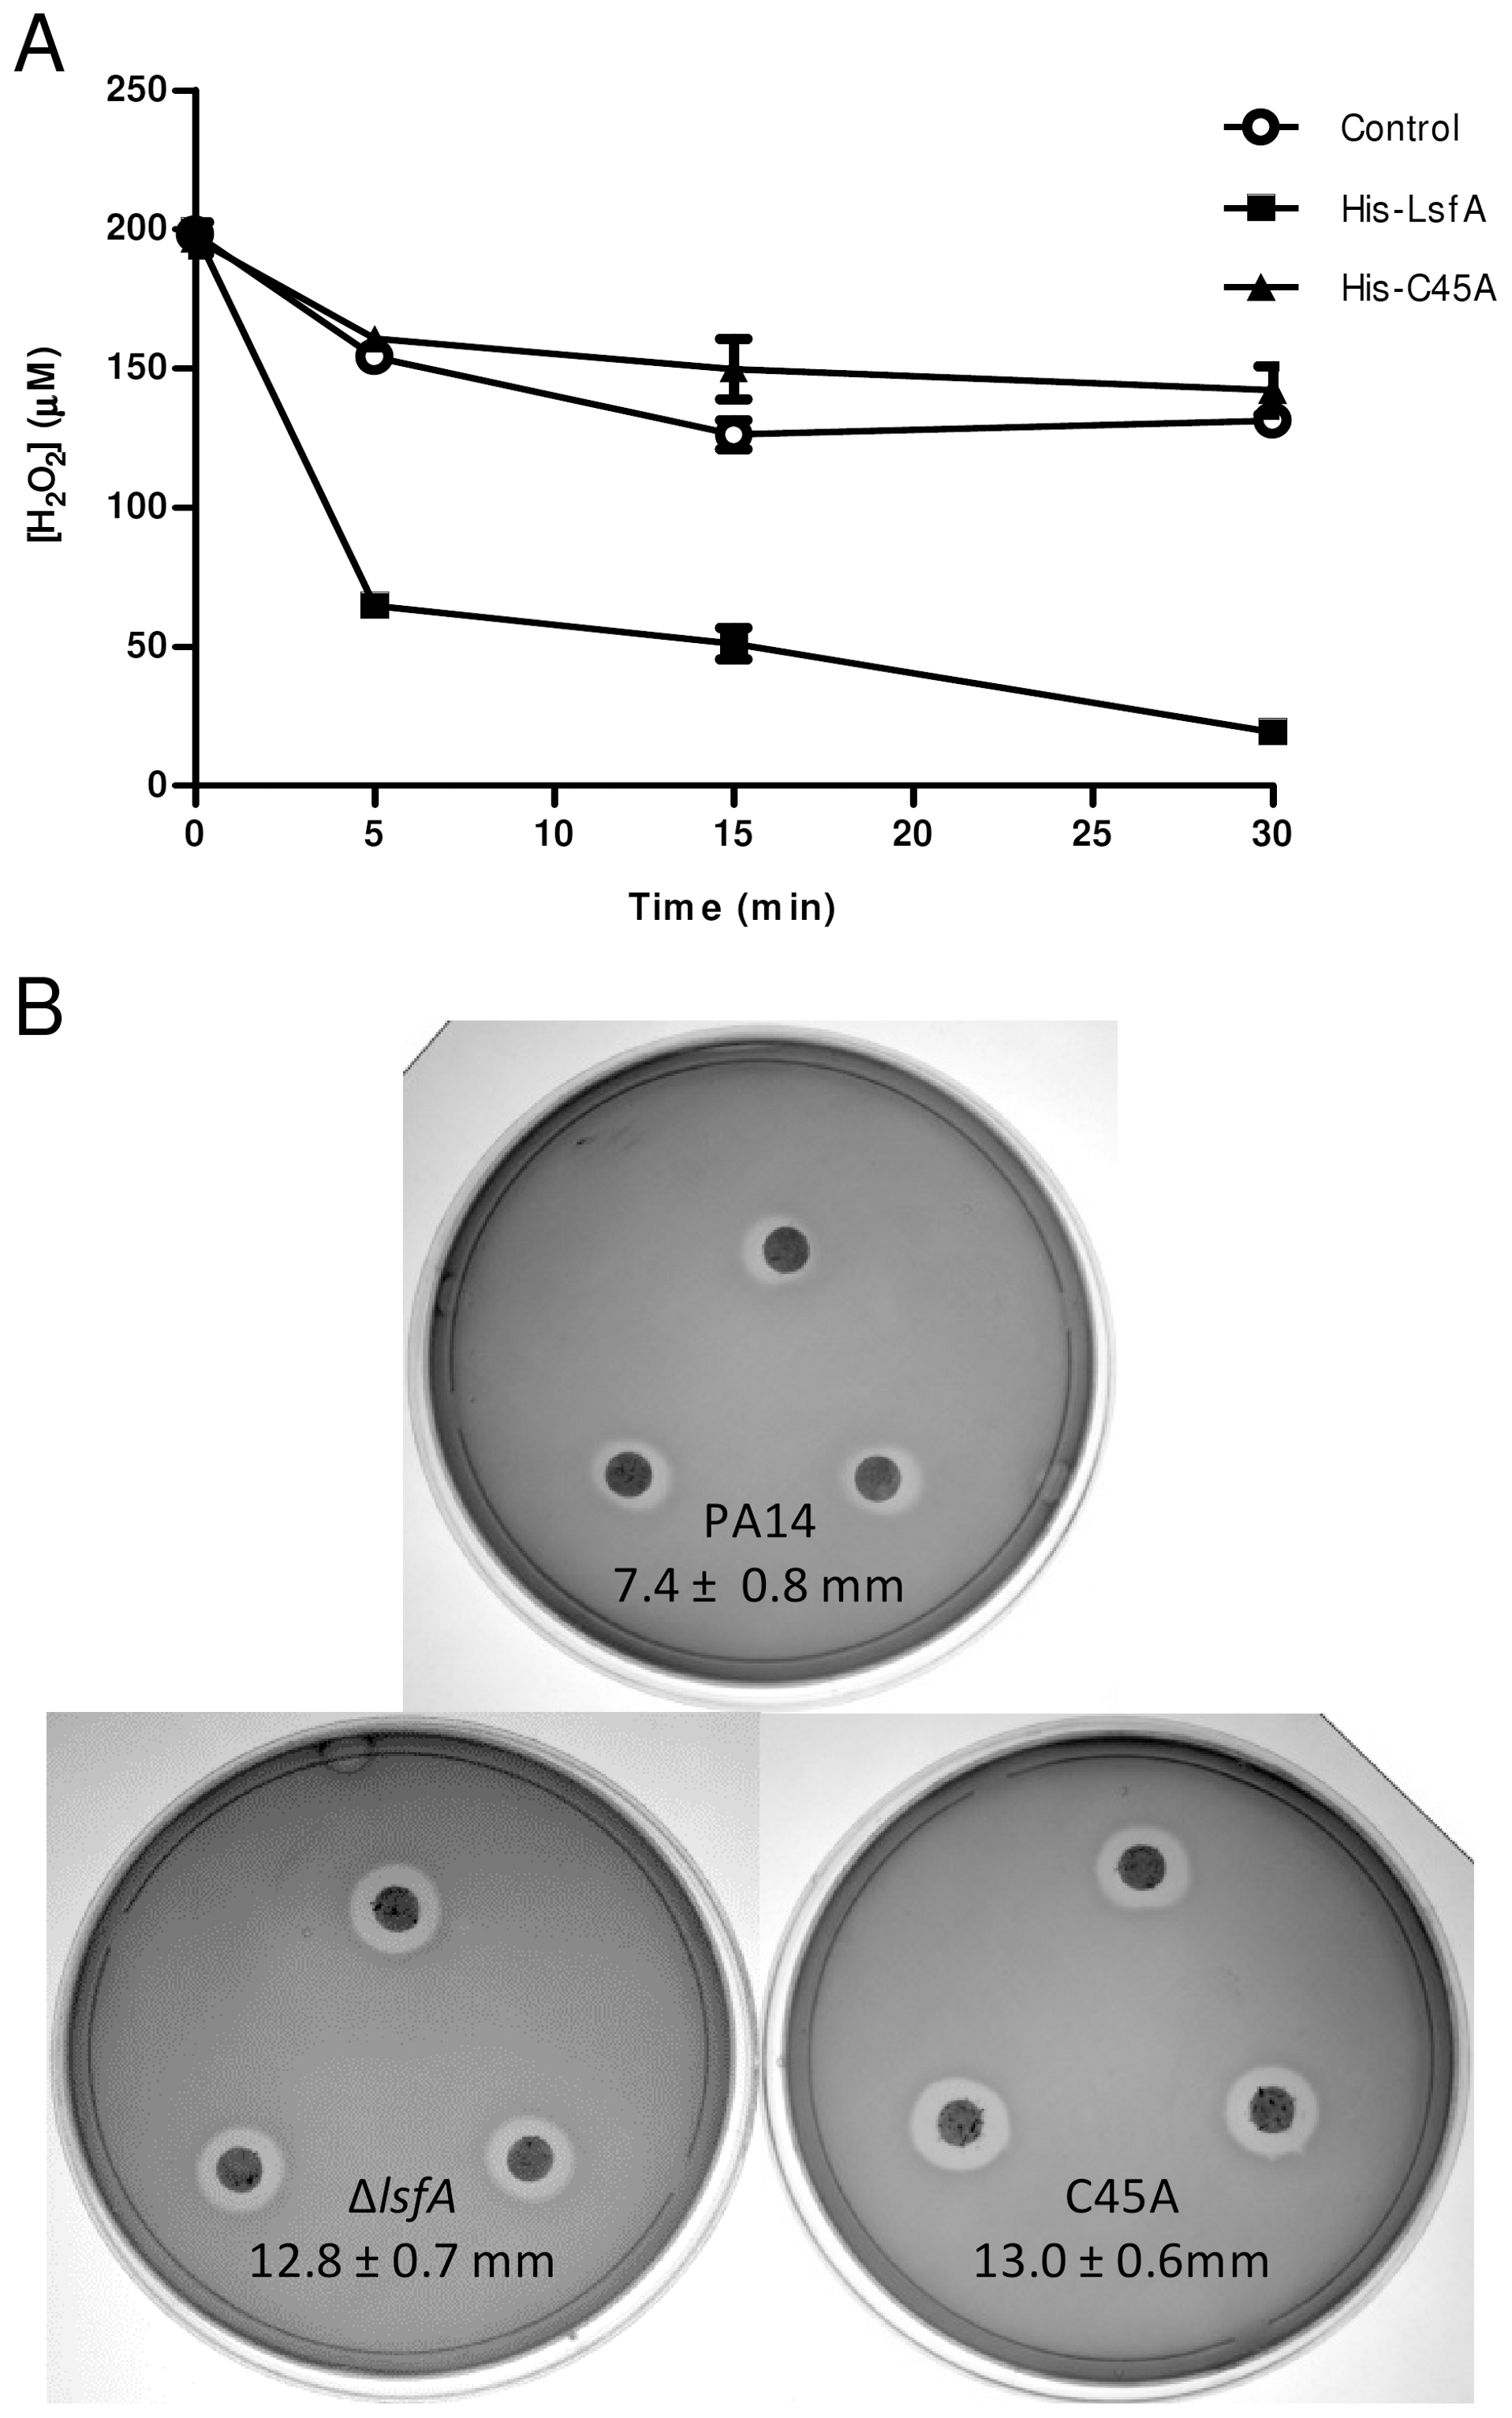 LsfA confers PA14 resistance to hydrogen peroxide and reduces it <i>in vitro</i>.